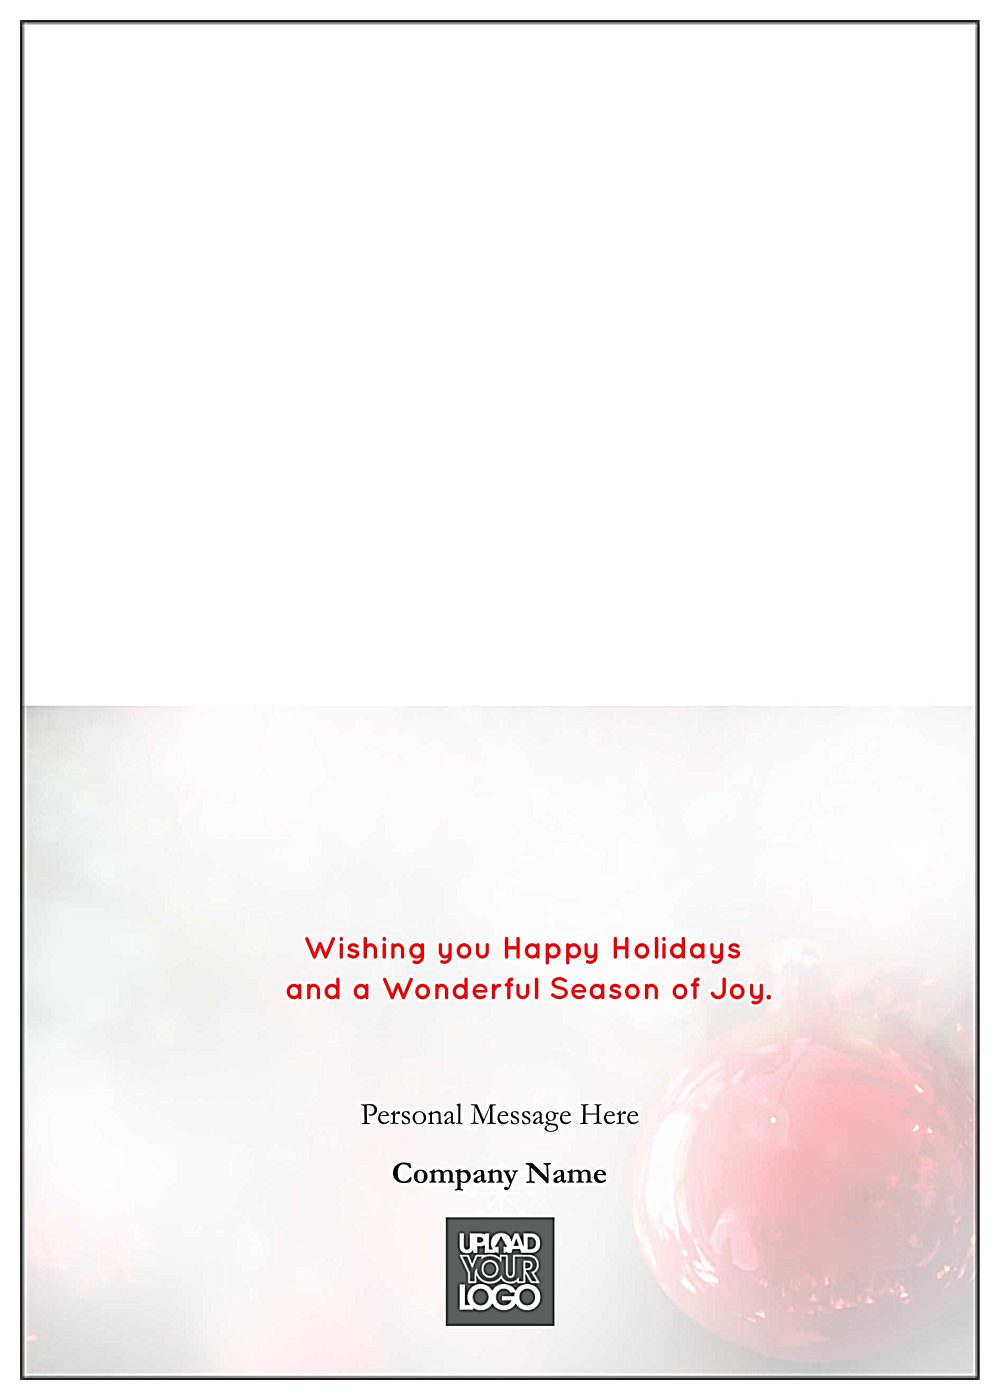 Merry Christmas Ornaments back - Greeting Cards Maker